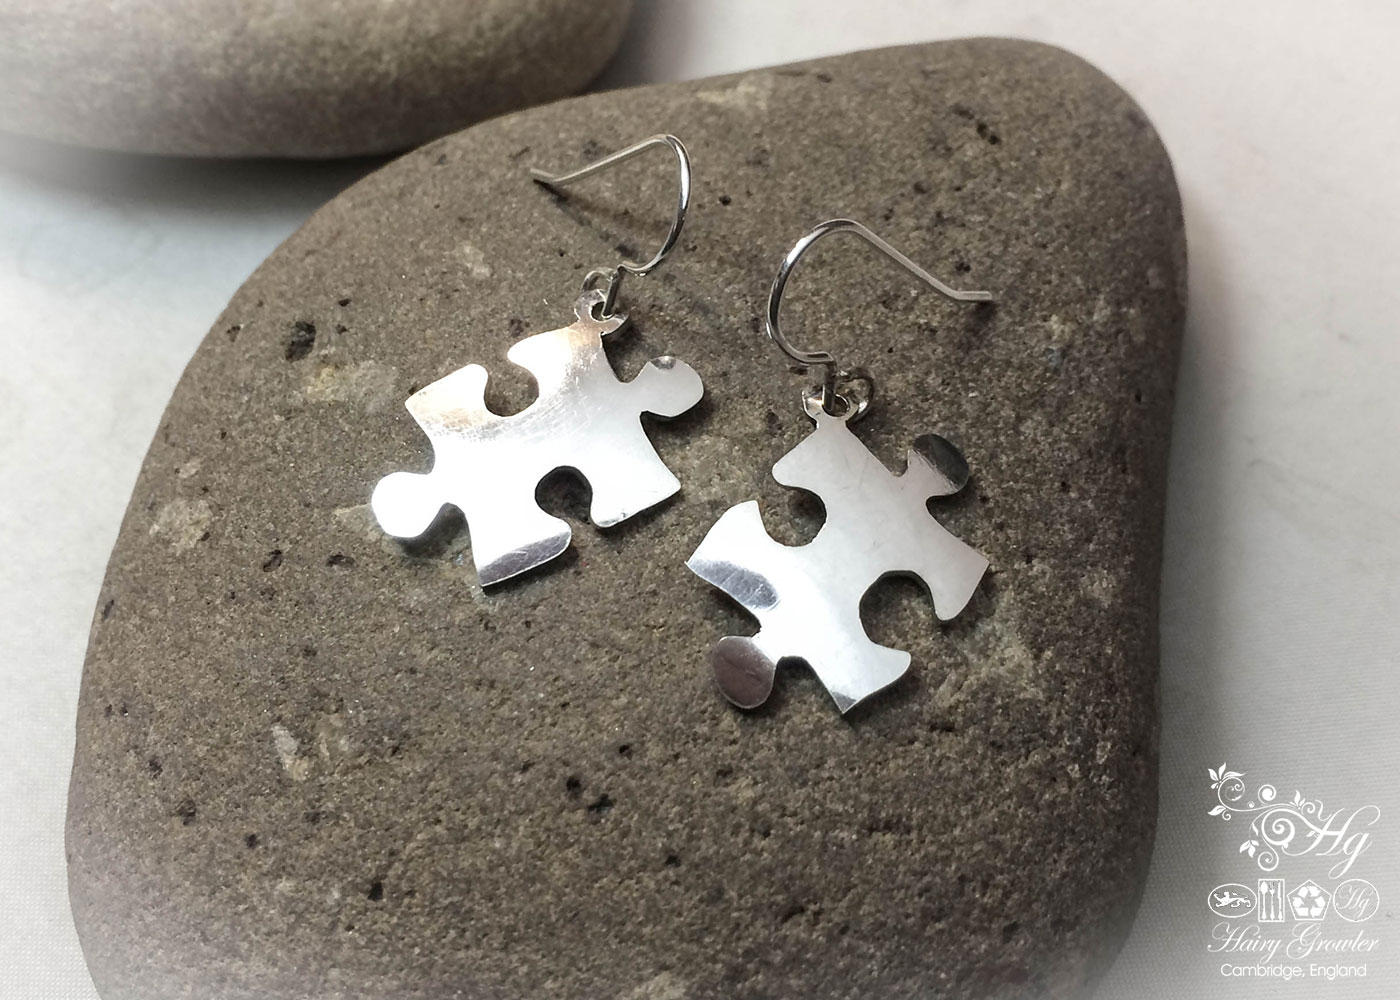 Jigsaw earrings - handmade and ethical, crafted from an recycled vintage spoon